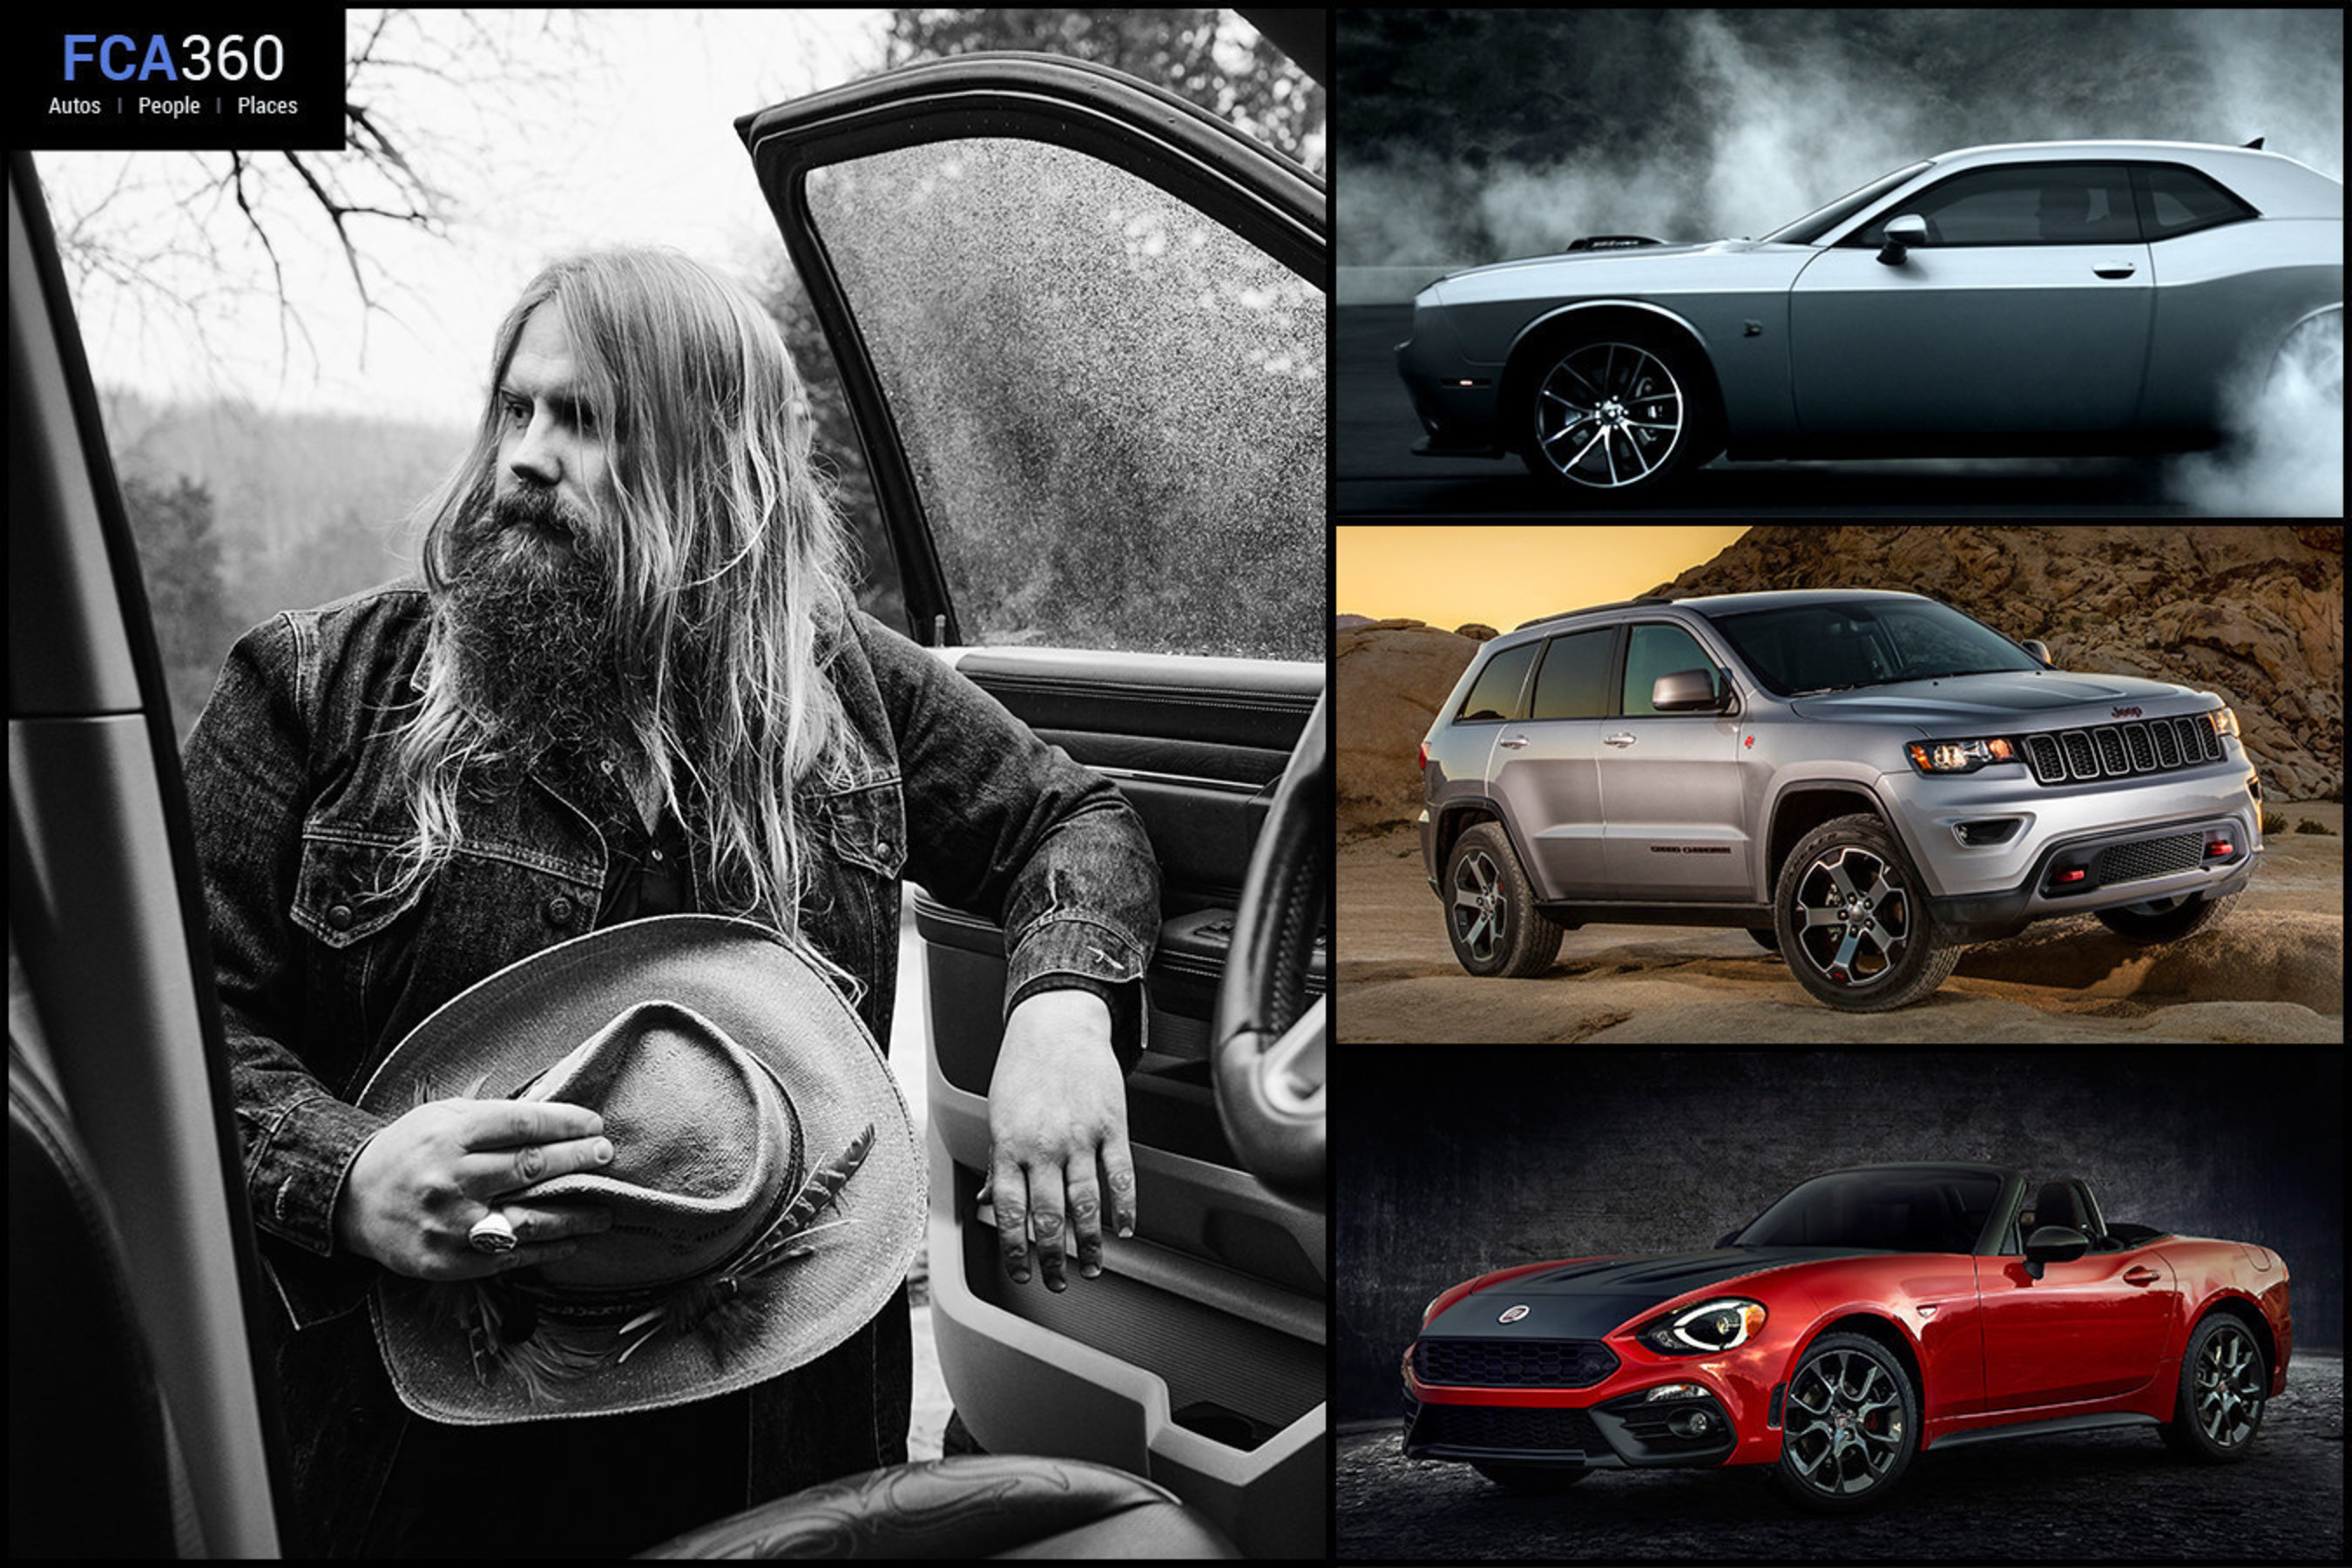 FCA360 Highlights Passion, New Products and an Expanding Partnership